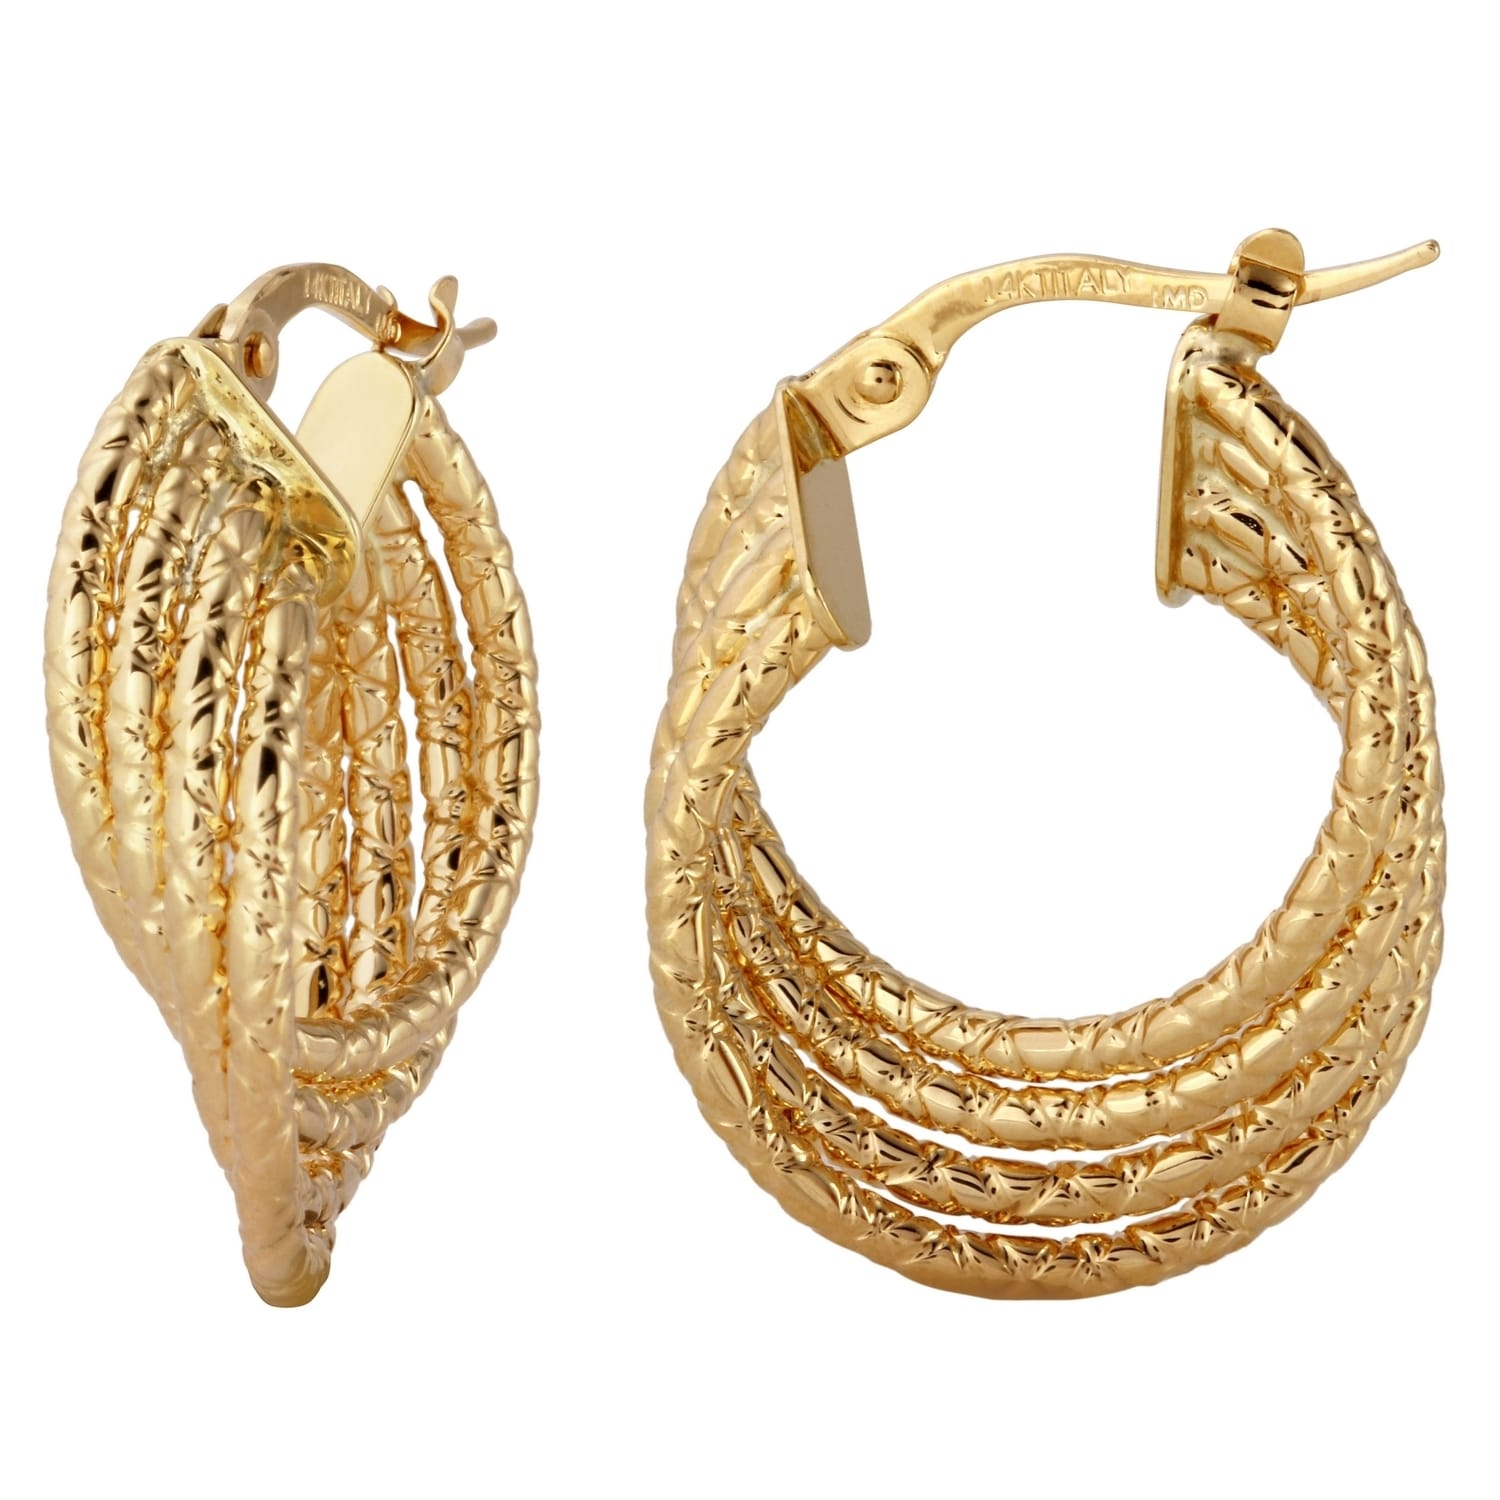 inch jewelry fremada free product yellow today overstock gold watches italian earrings shipping infinity